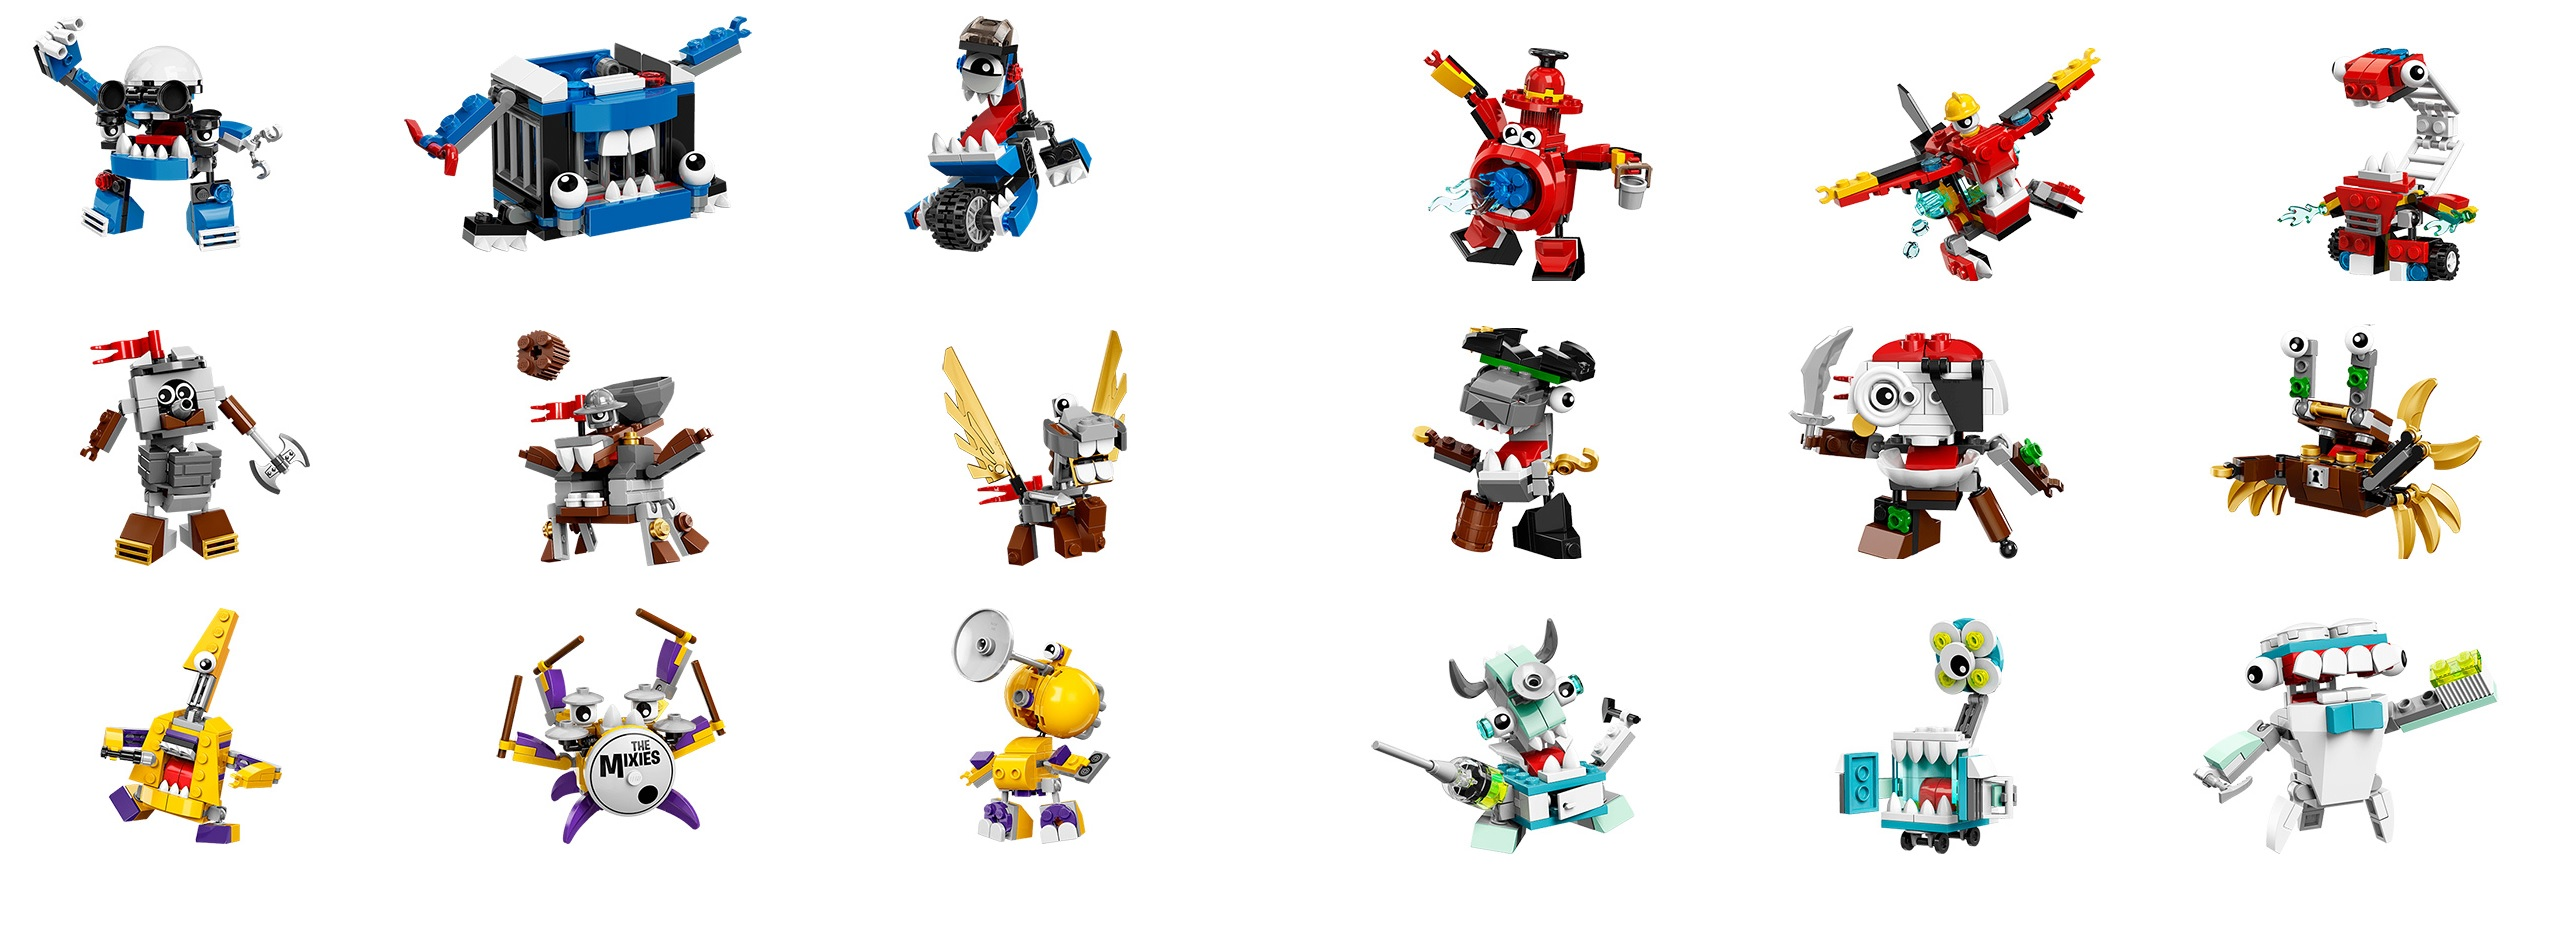 2016-LEGO-Mixels-Series-6-Set-Images-41554-41555-41556-41557-41558-41559-41560-41561-41562.jpg